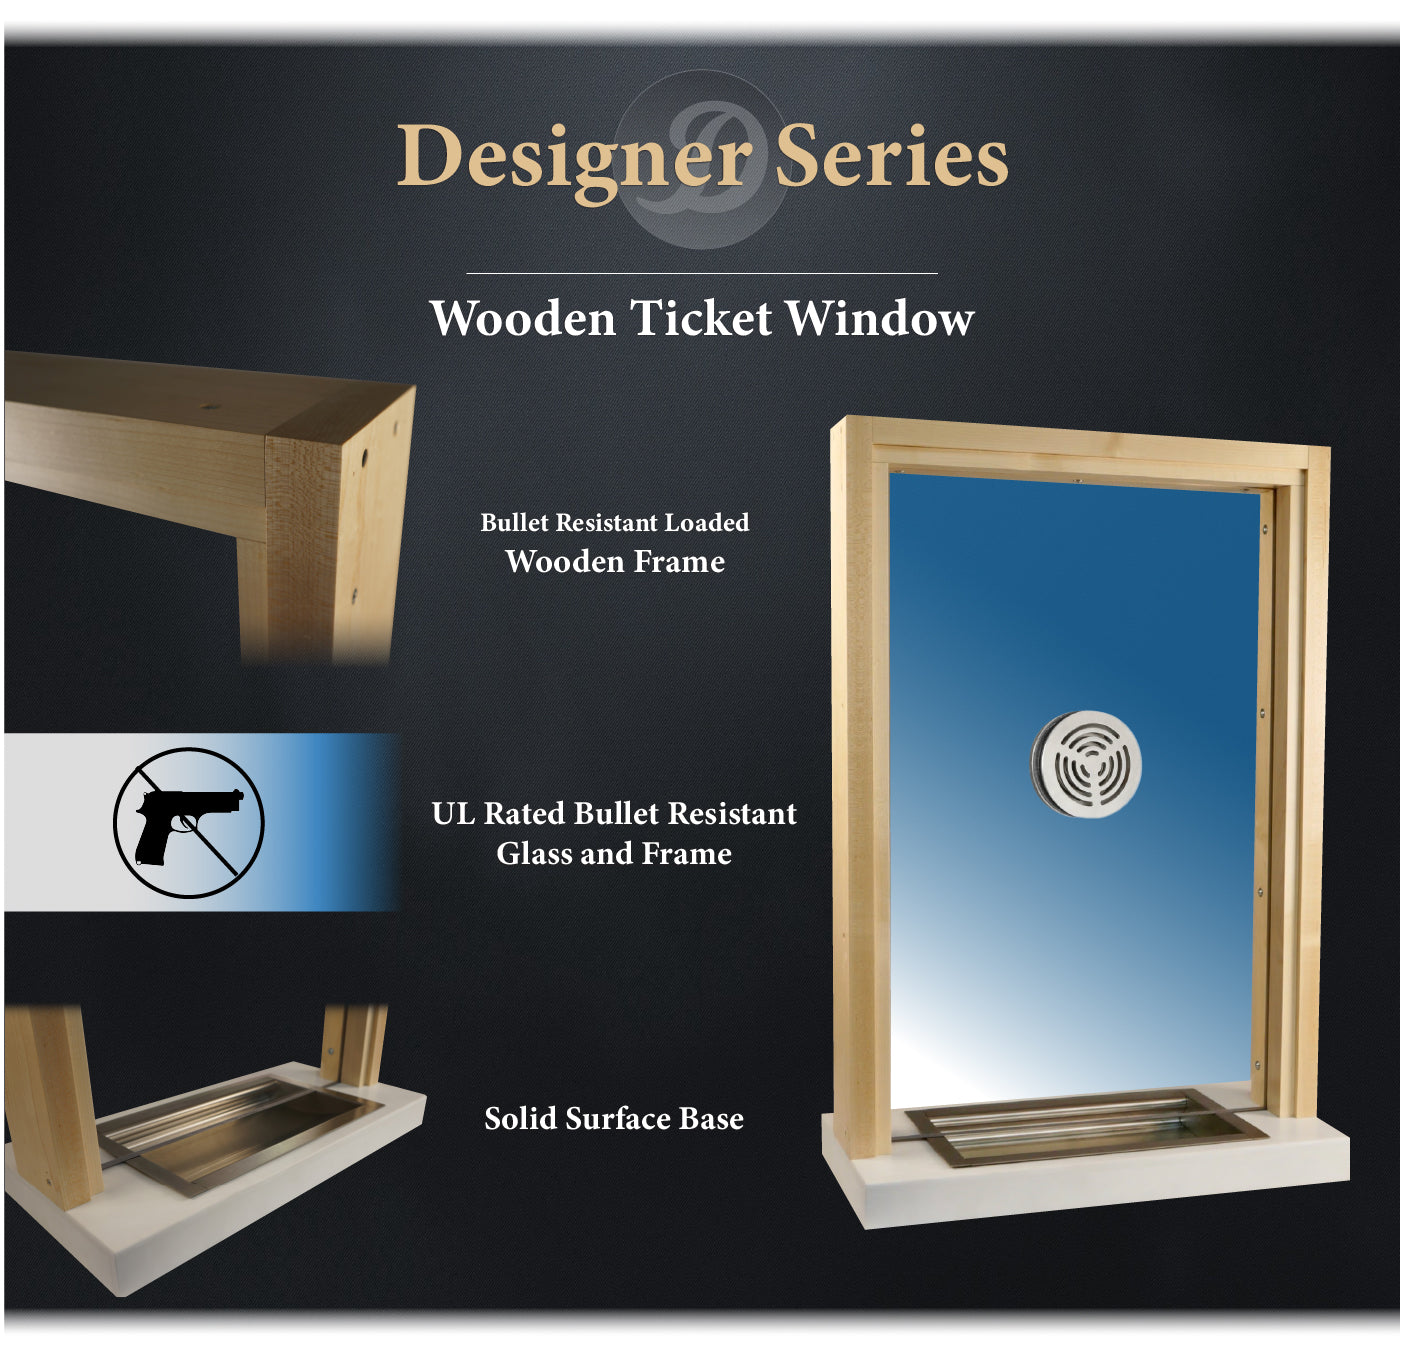 wood framed ticket window details